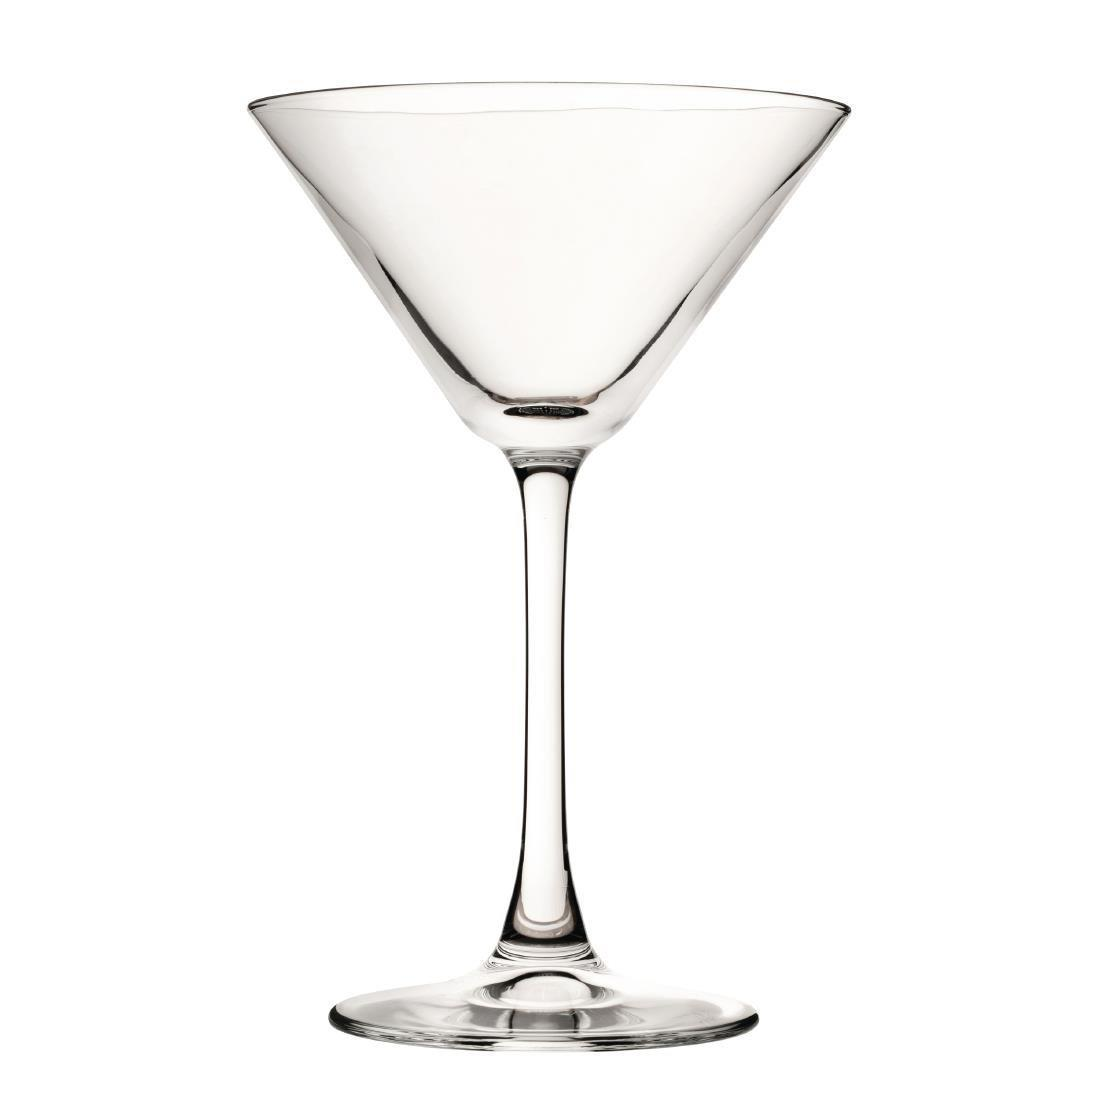 Enoteca Martini 7.5oz (220ml) (Box 6) - CW015